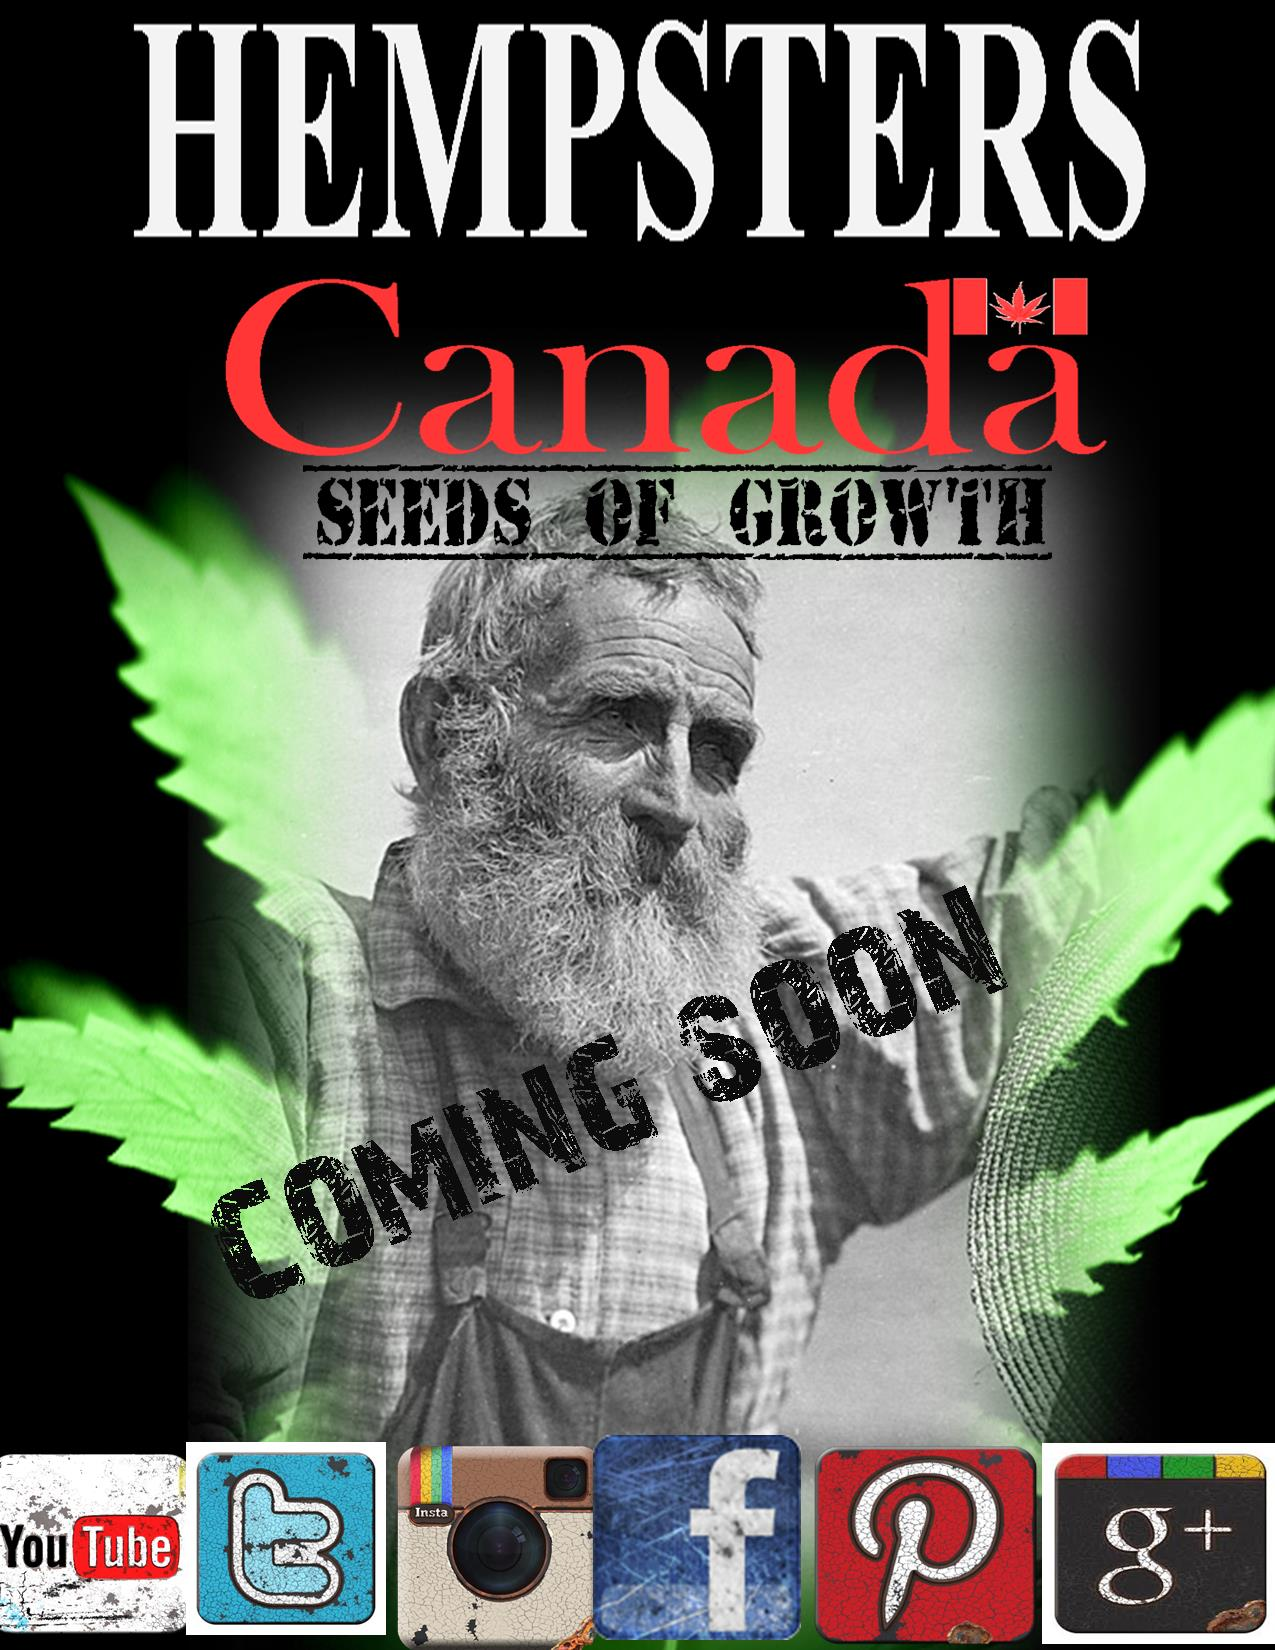 CANADA POSTER MASTER_WEBSITEPAGEONLY_1